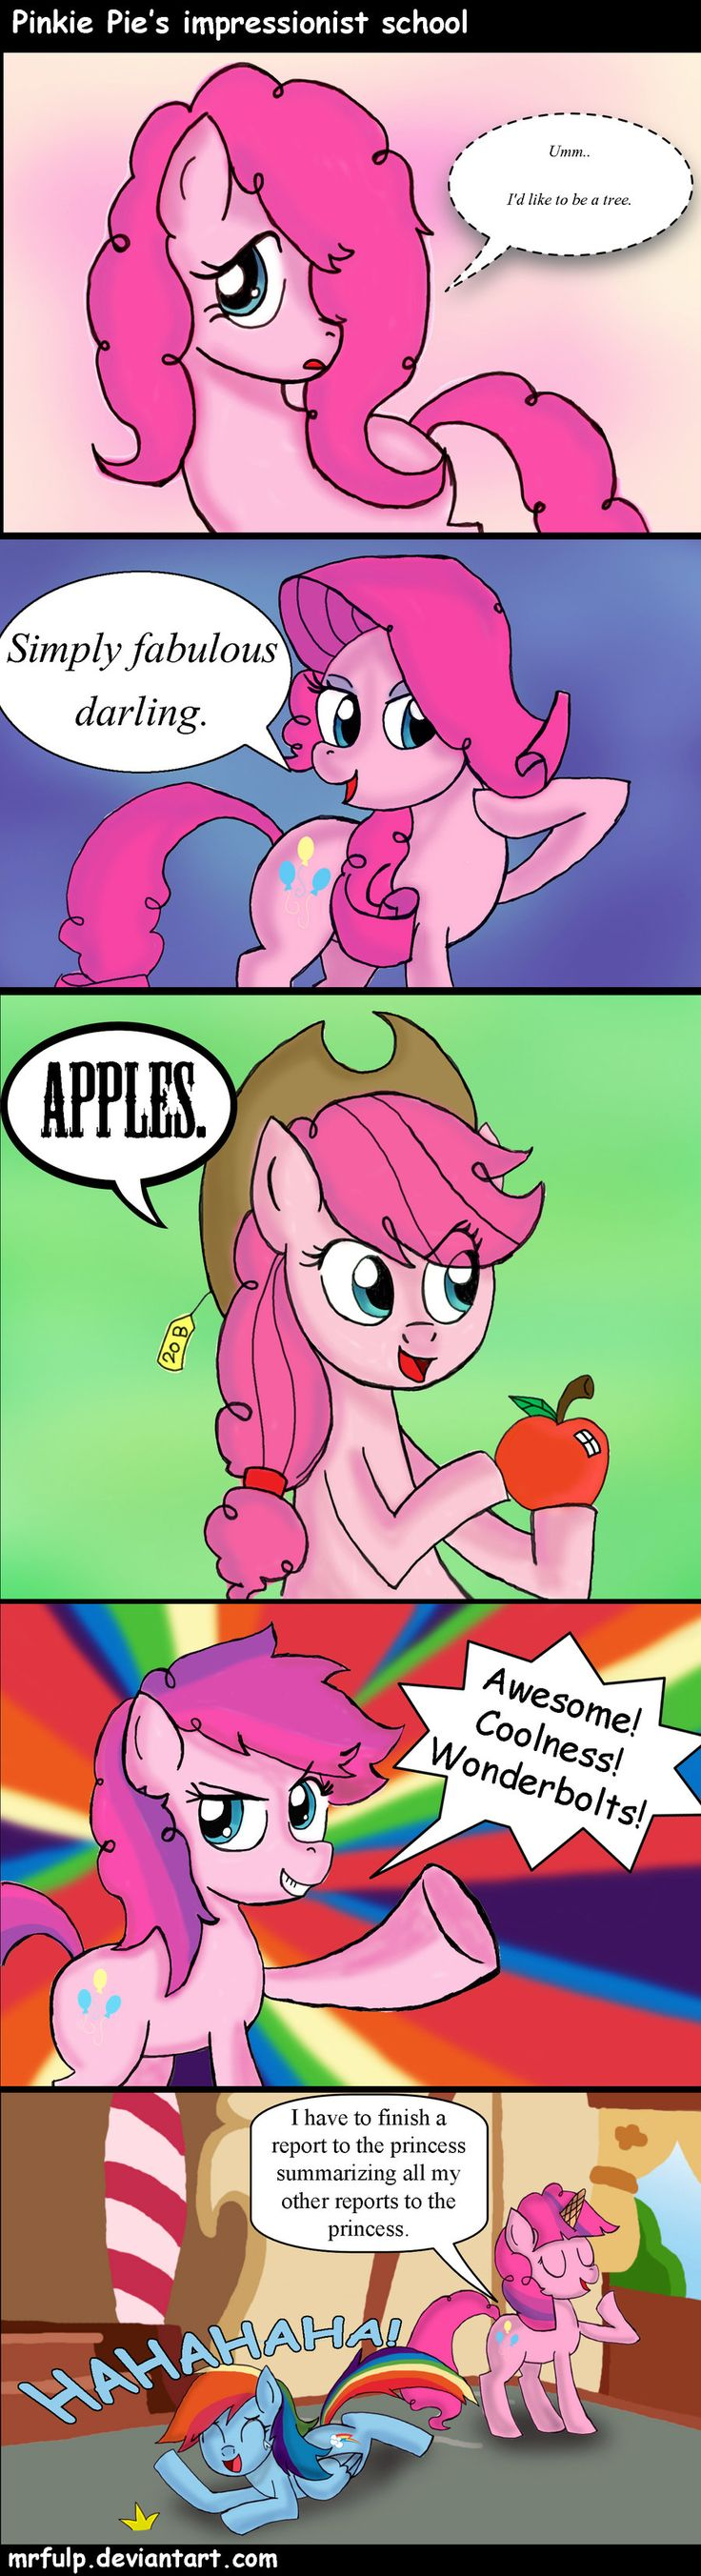 Pinkie's Impressionist School don't forget to summarize all your reports to the princess